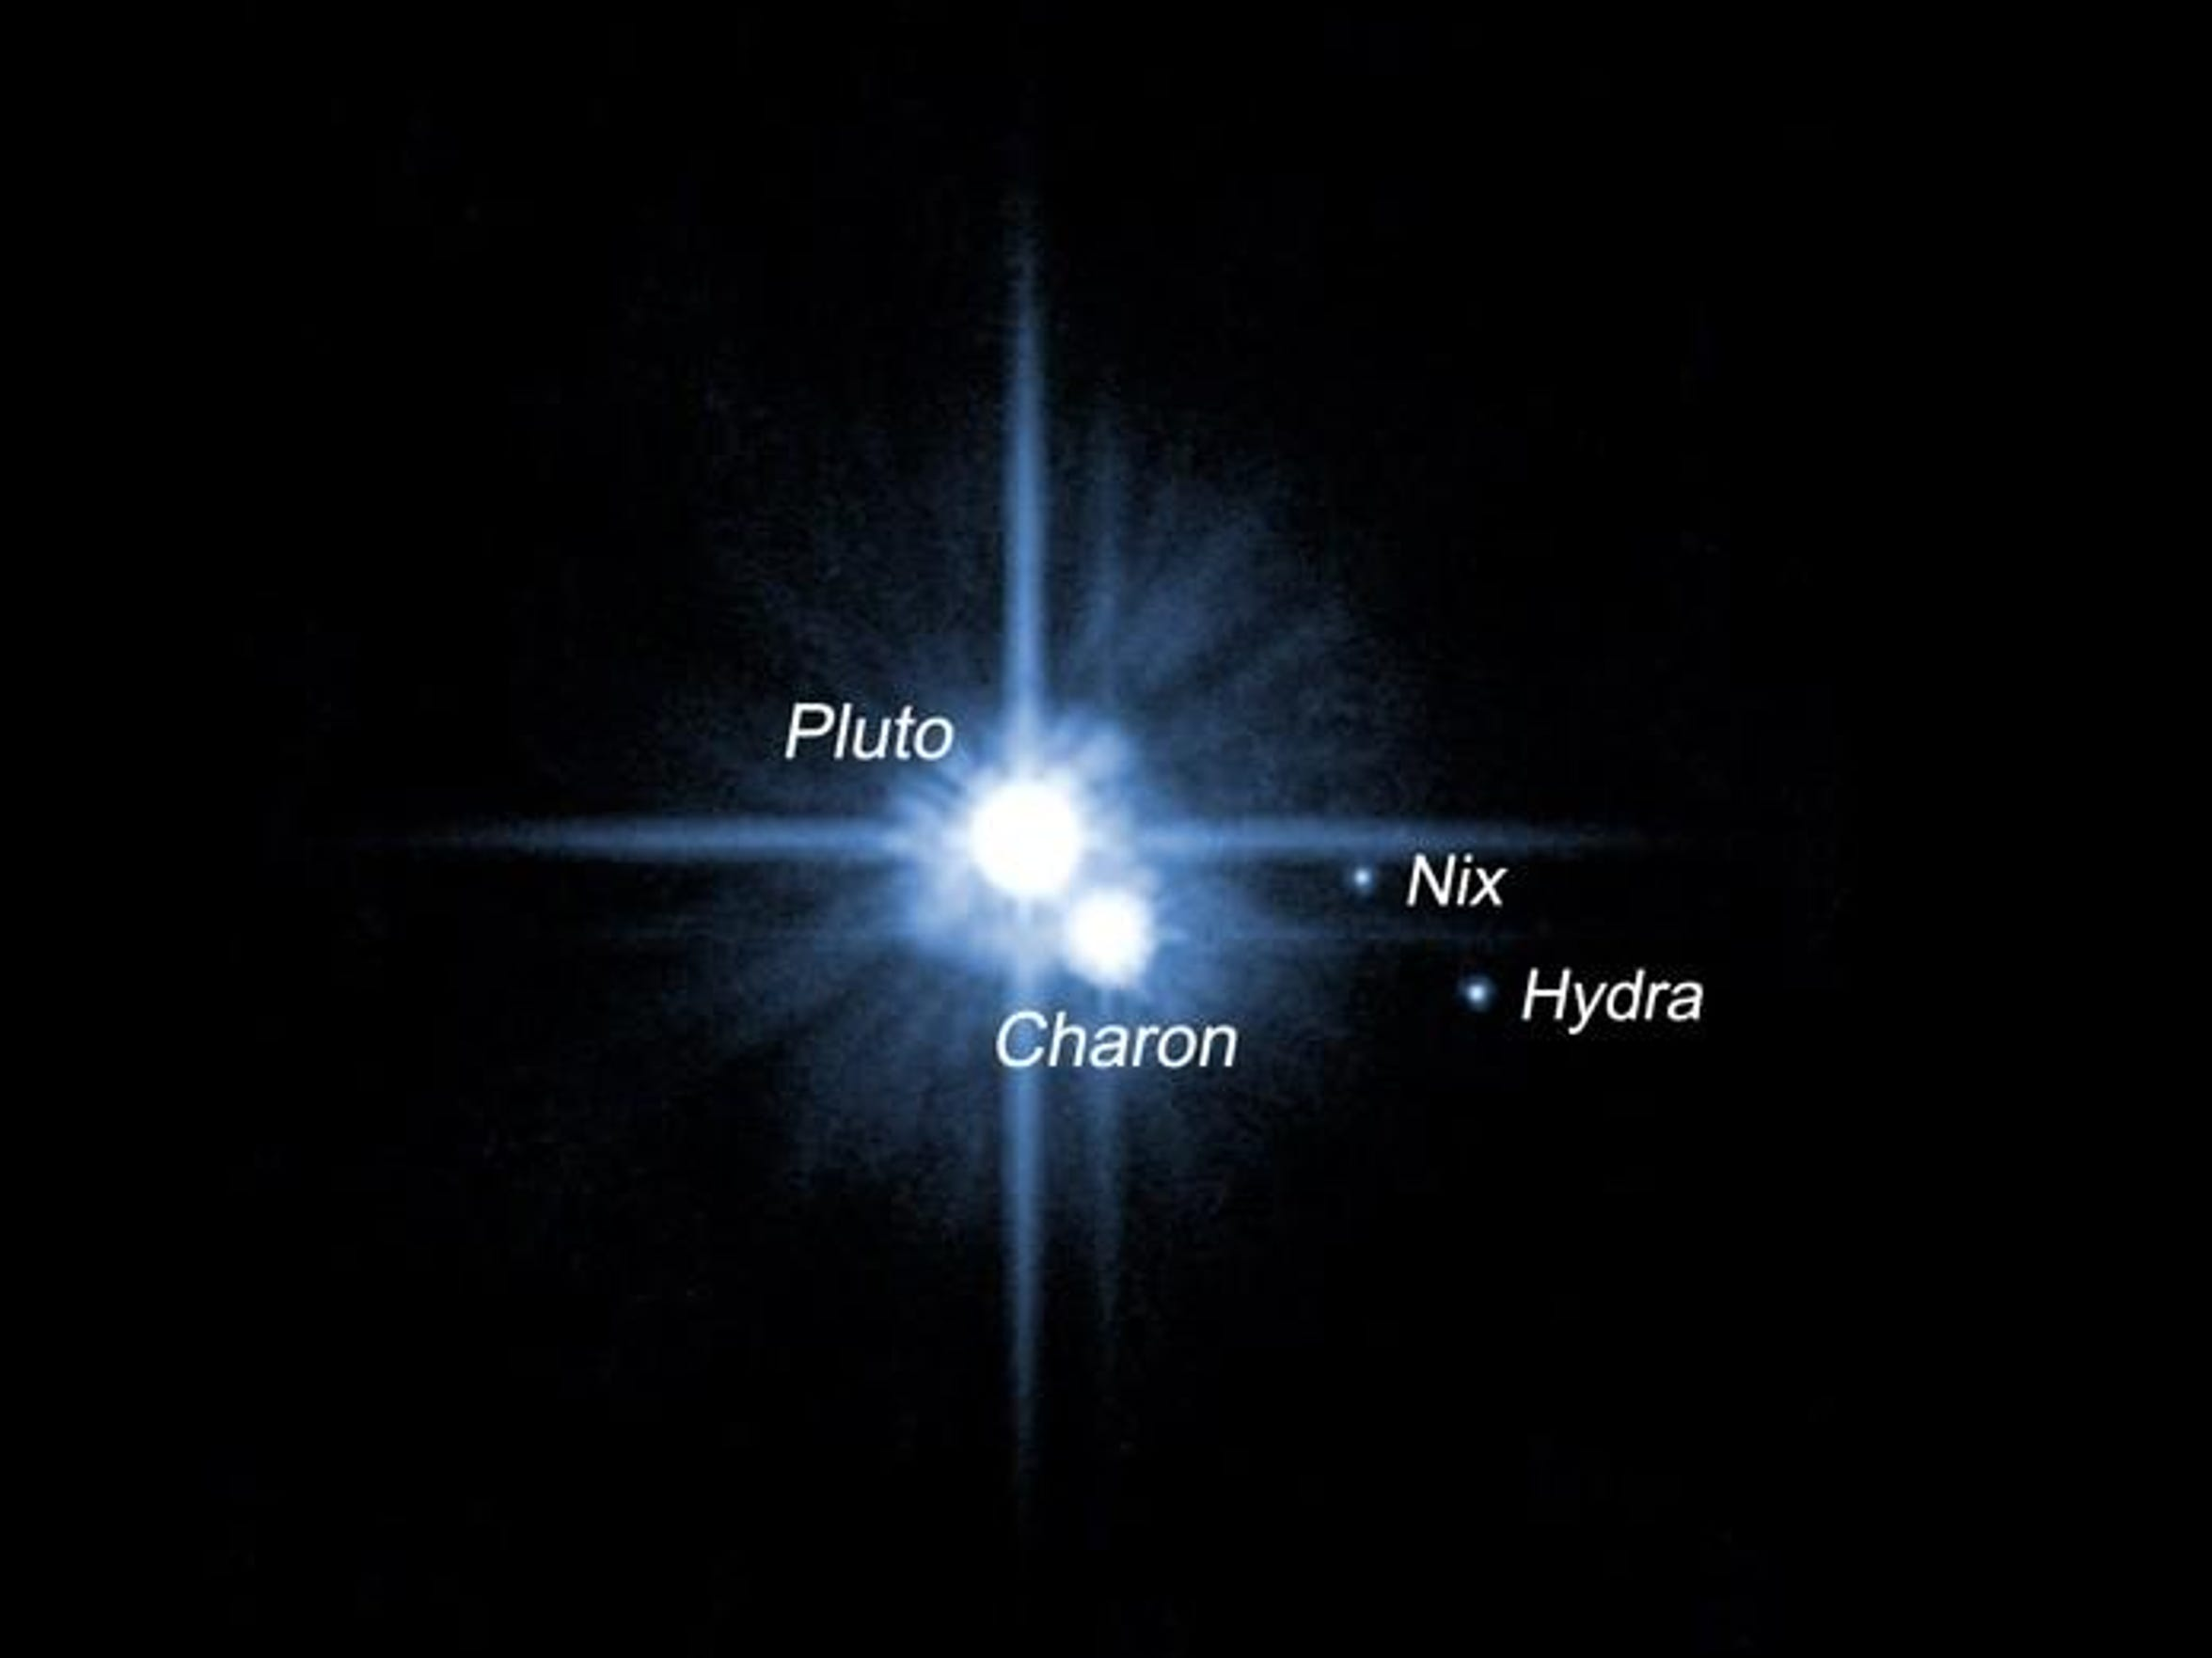 Pluto and its moons, Charon, Nix and Hydra